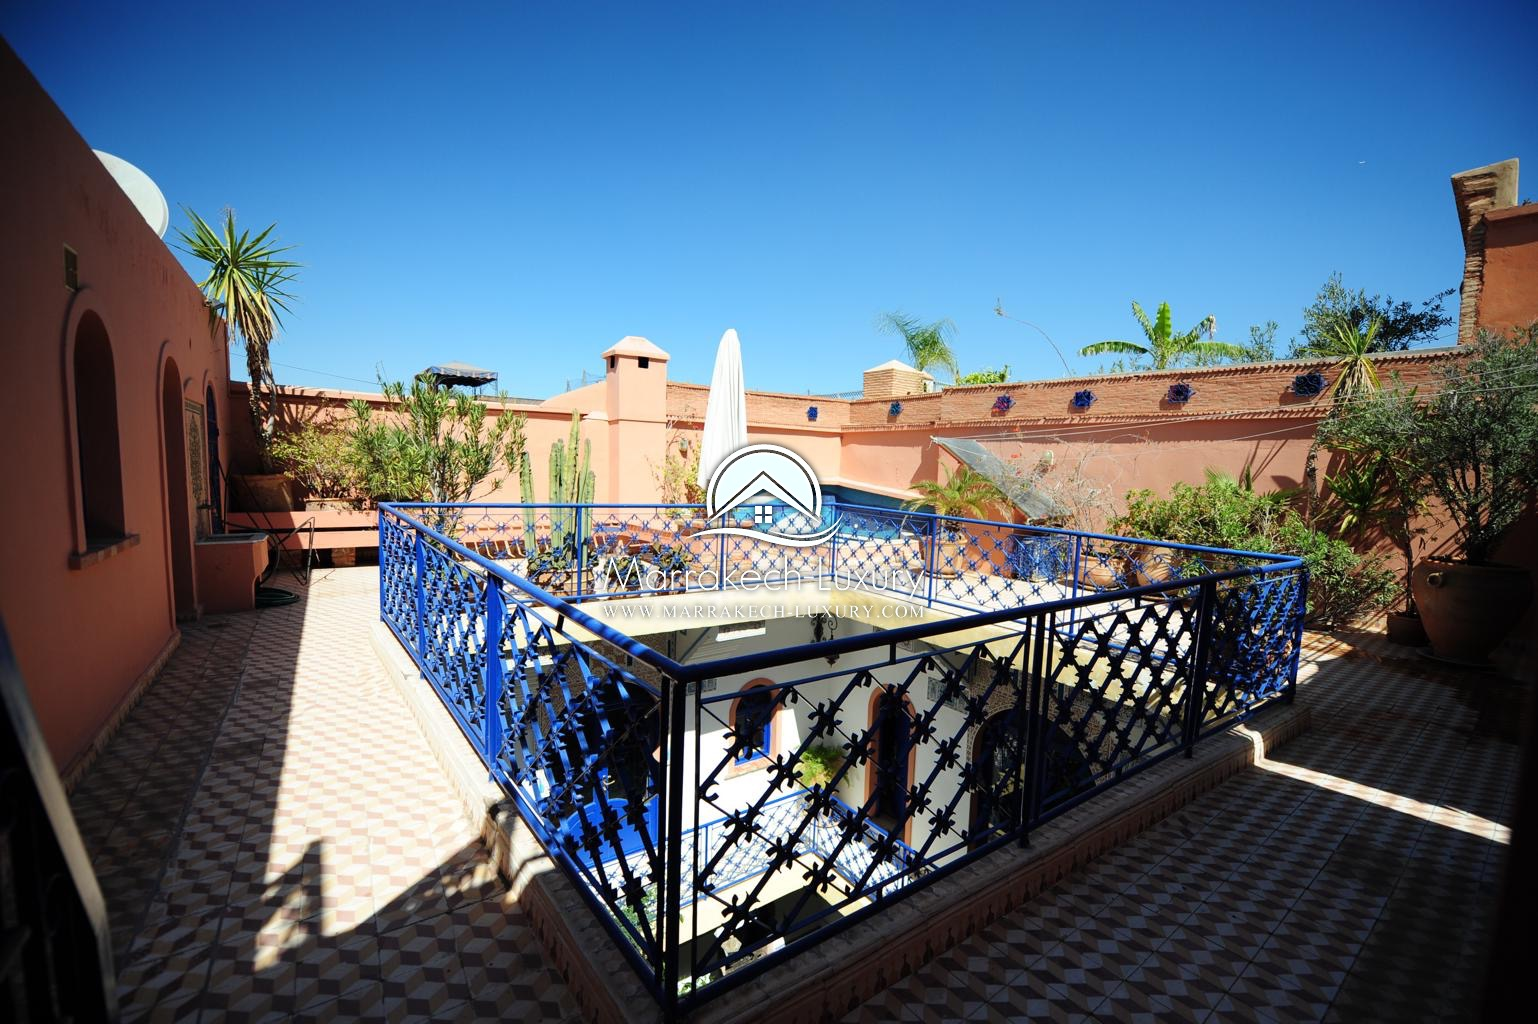 Riaavmed1036ma 45 agence immobili re marrakech acheter for Agence immobiliere 45